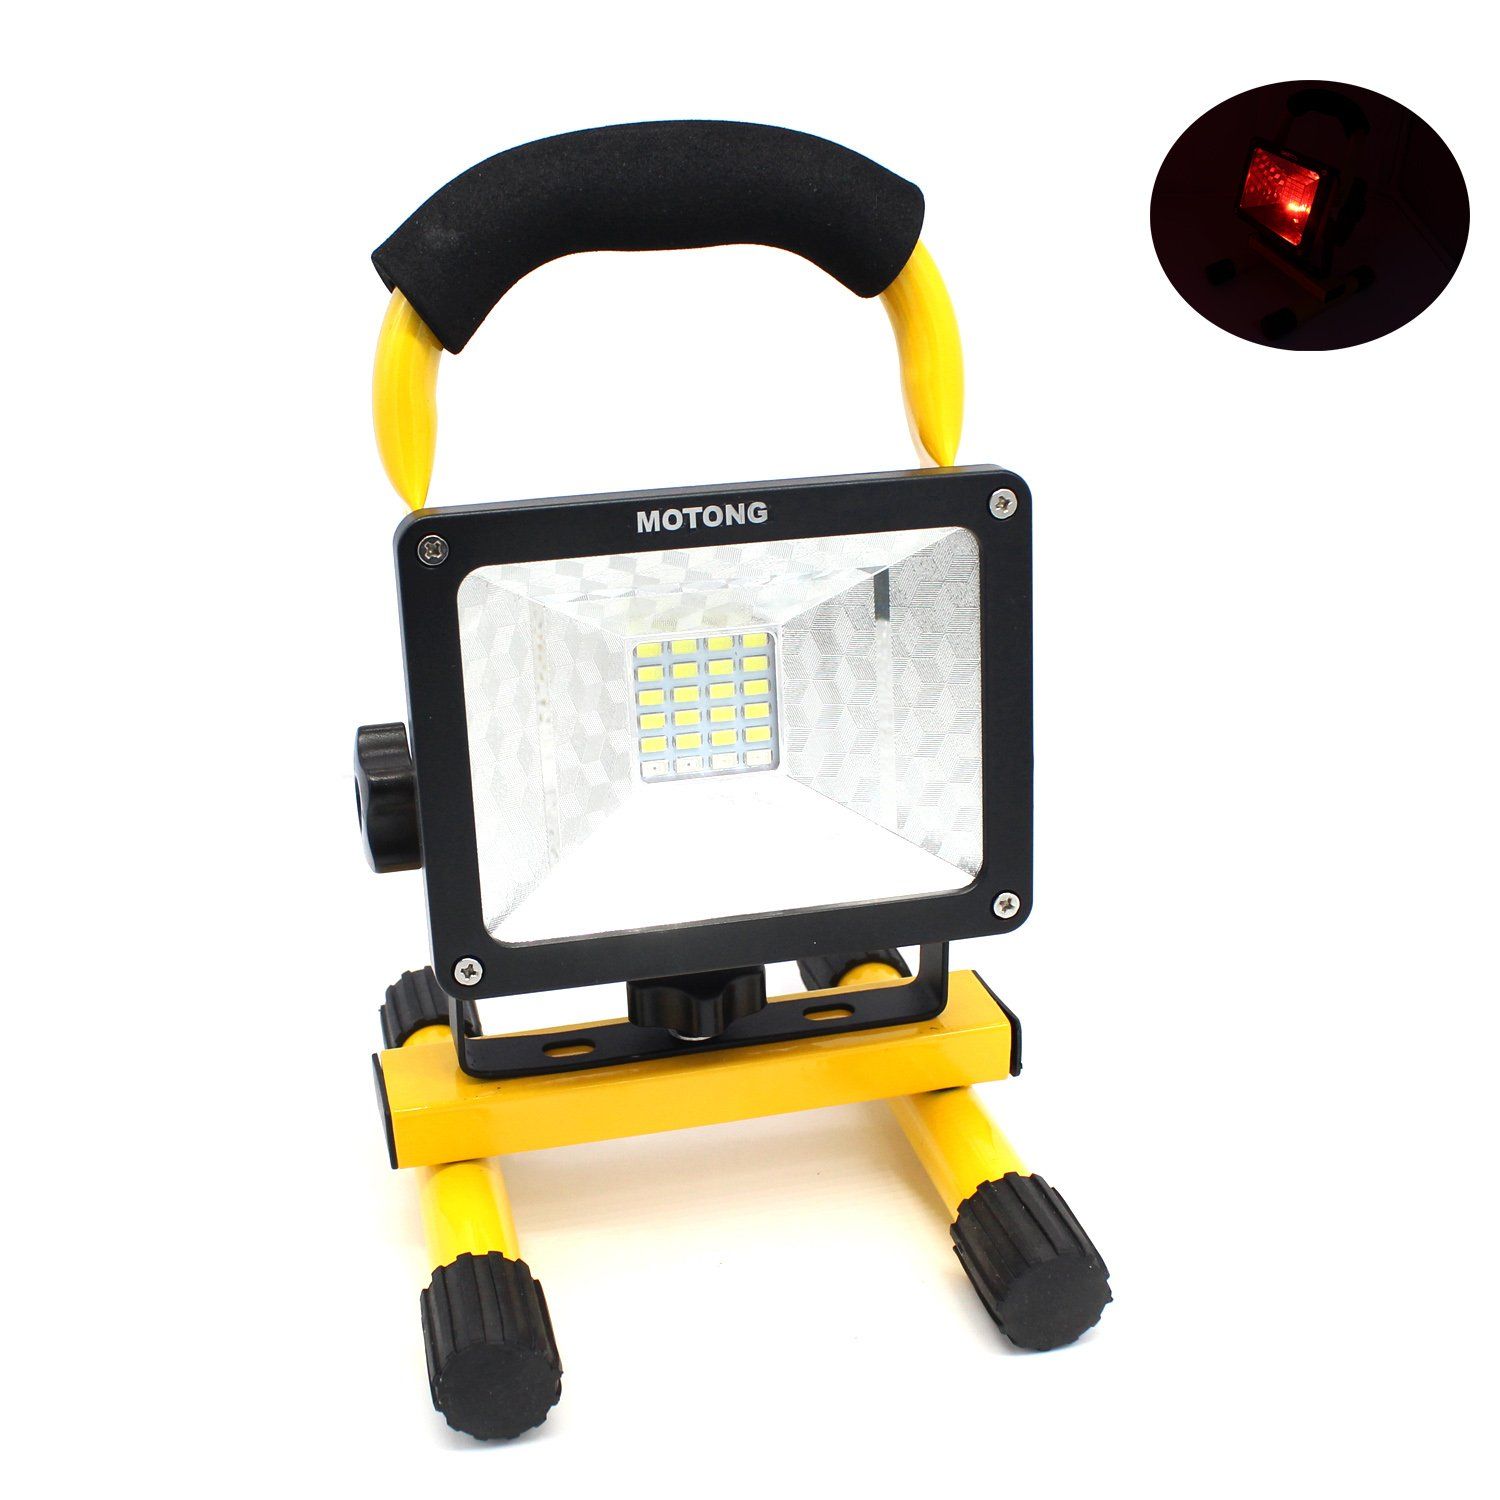 MOTONG Portable Rechargeable LED Flood Spot Light For Outdoor Camping Lamp,Expressway emergency,garden work,powered by 3PCS 18650 3.7V Rechargeable Lithium Battery. (Yellow)